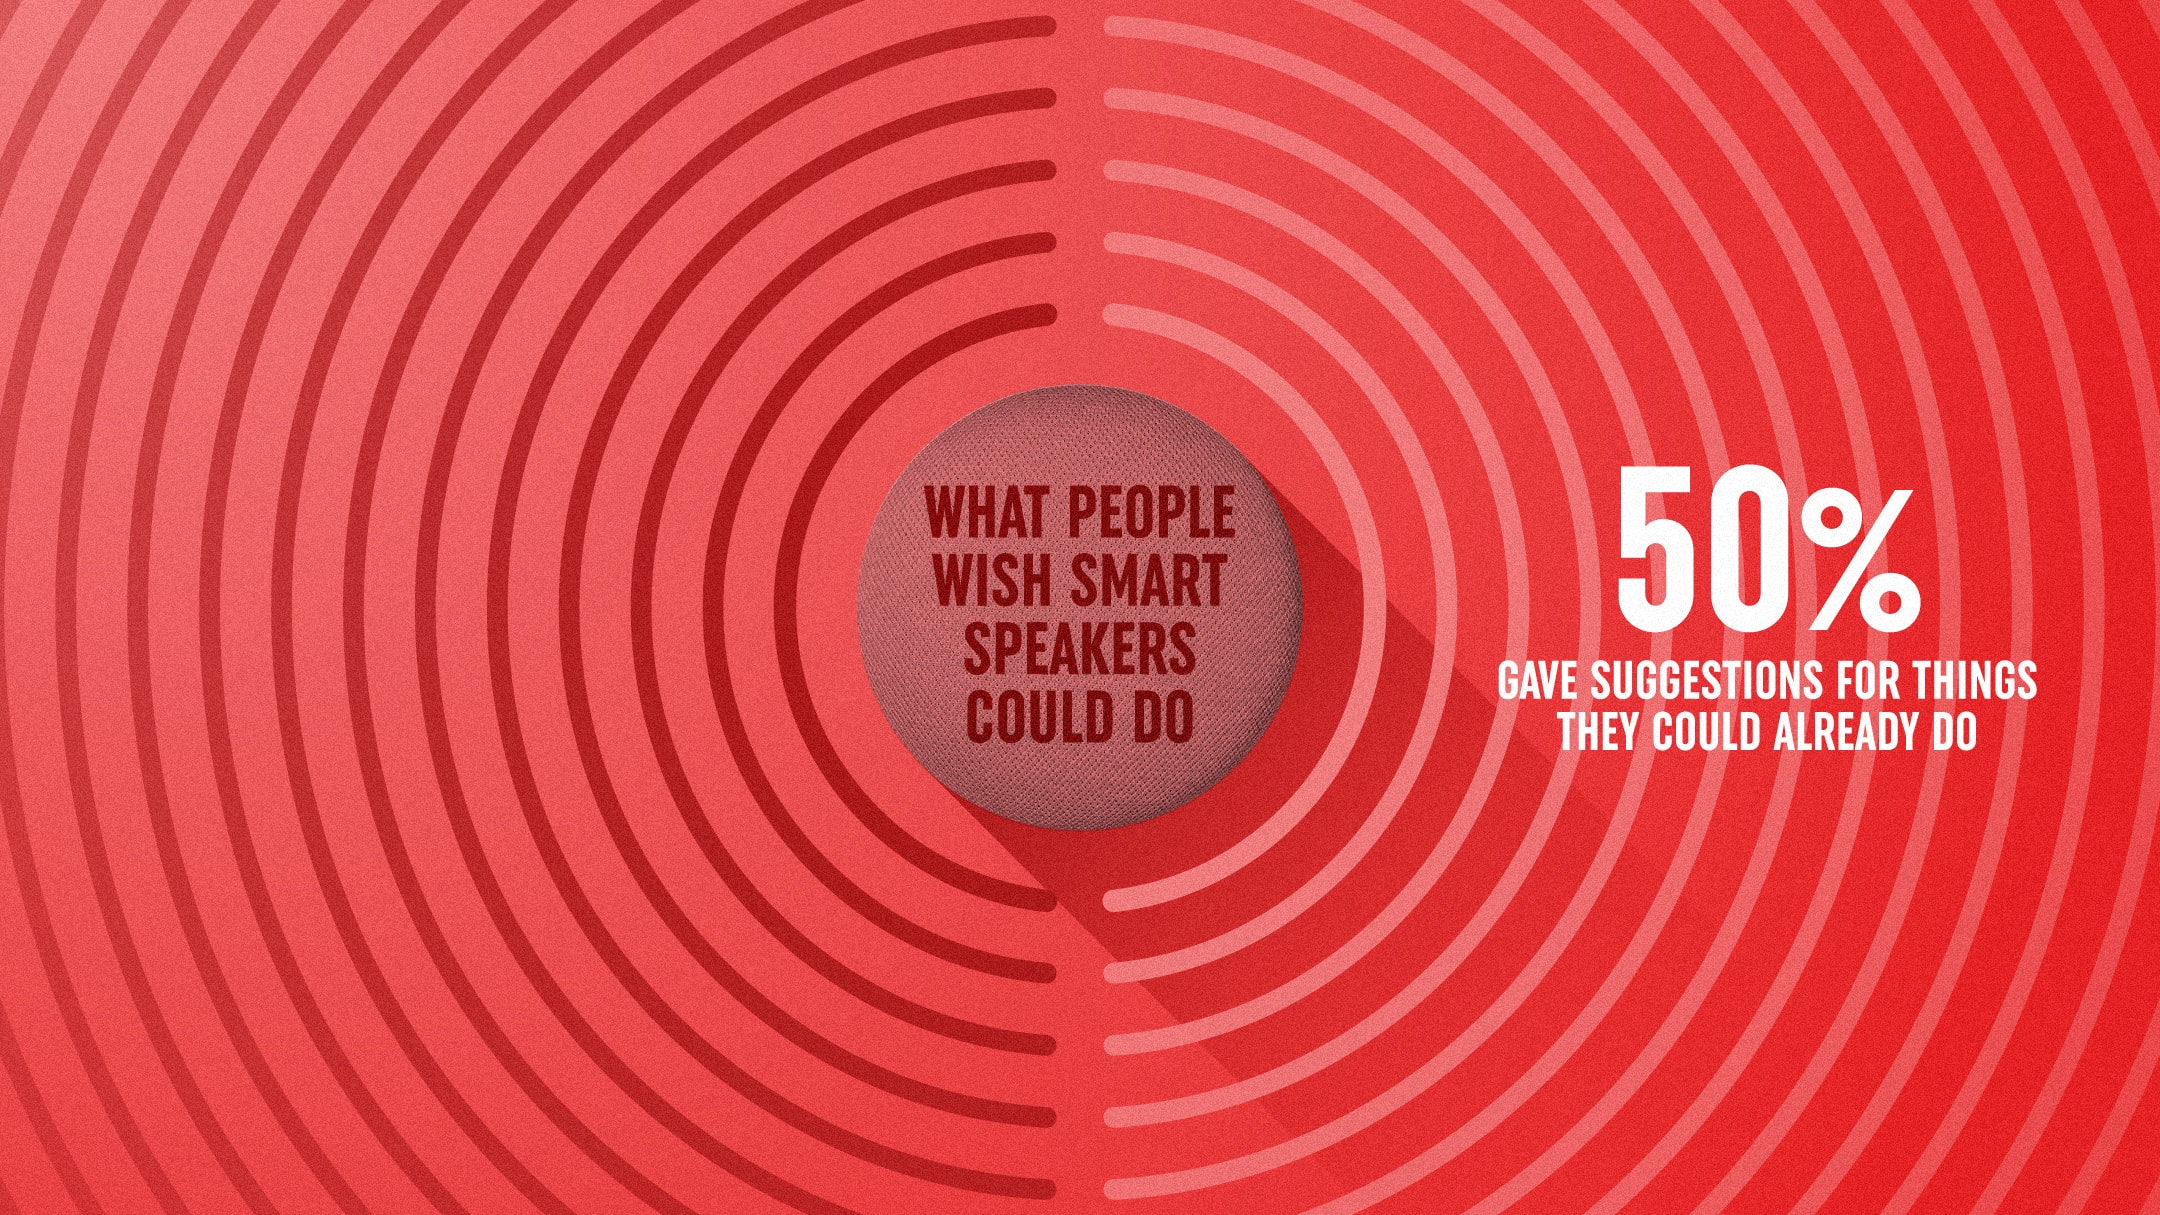 Are We Smart Enough for Smart Speakers graphic - infographic